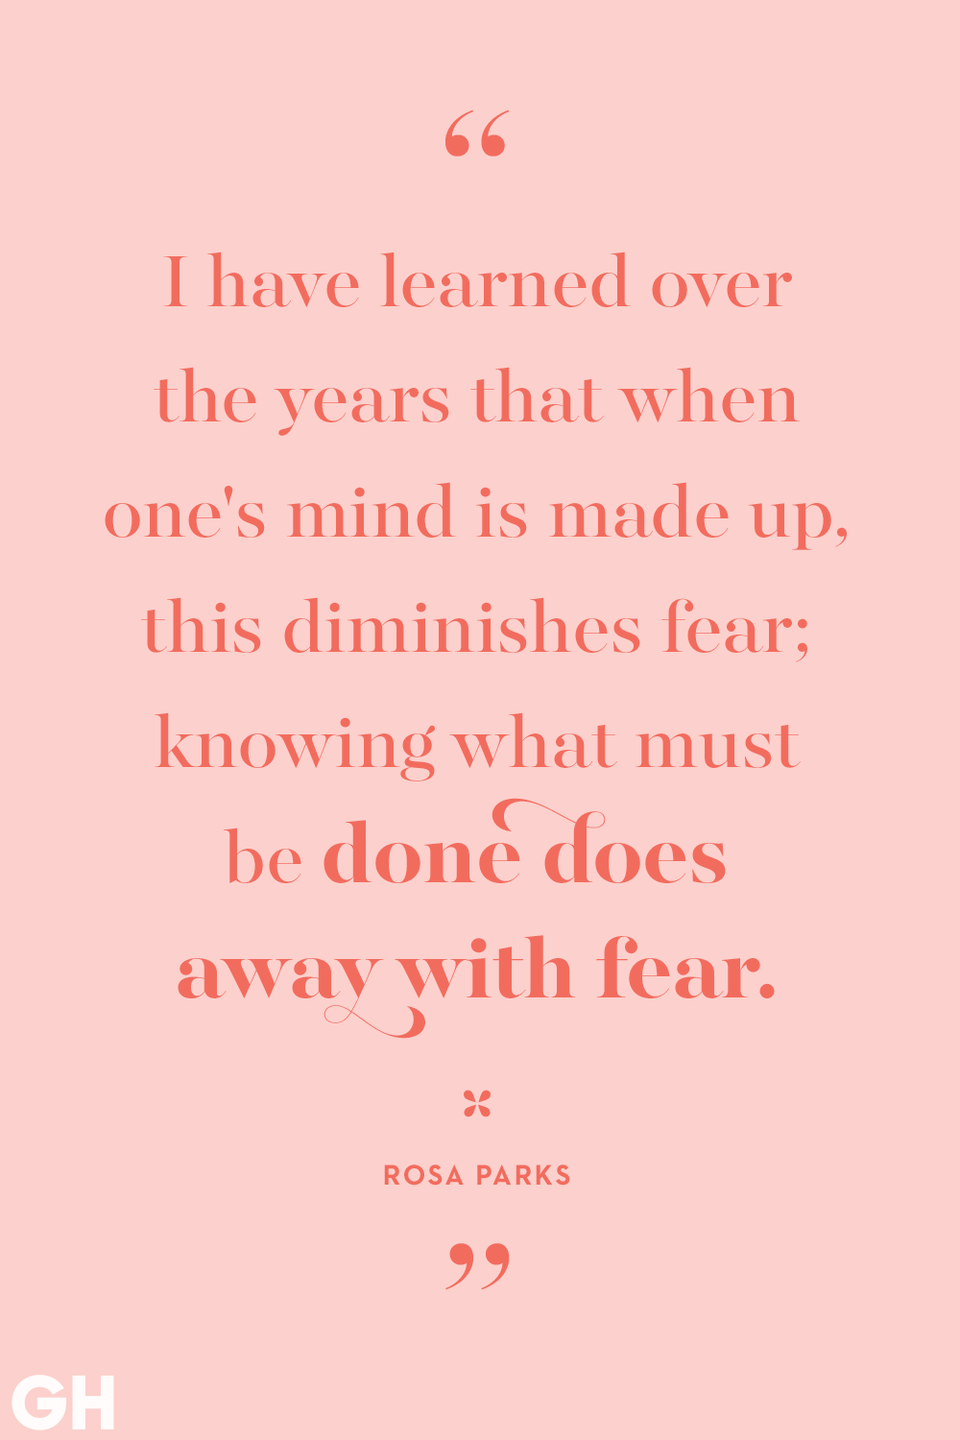 """<p>I have learned over the years that when one's mind is made up, this diminishes fears; knowing what must be done does away with fear.</p><p><strong>RELATED:</strong> <a href=""""https://www.goodhousekeeping.com/life/inspirational-stories/g2239/women-who-changed-our-world/"""" rel=""""nofollow noopener"""" target=""""_blank"""" data-ylk=""""slk:Women Who Changed Our World"""" class=""""link rapid-noclick-resp"""">Women Who Changed Our World</a></p>"""